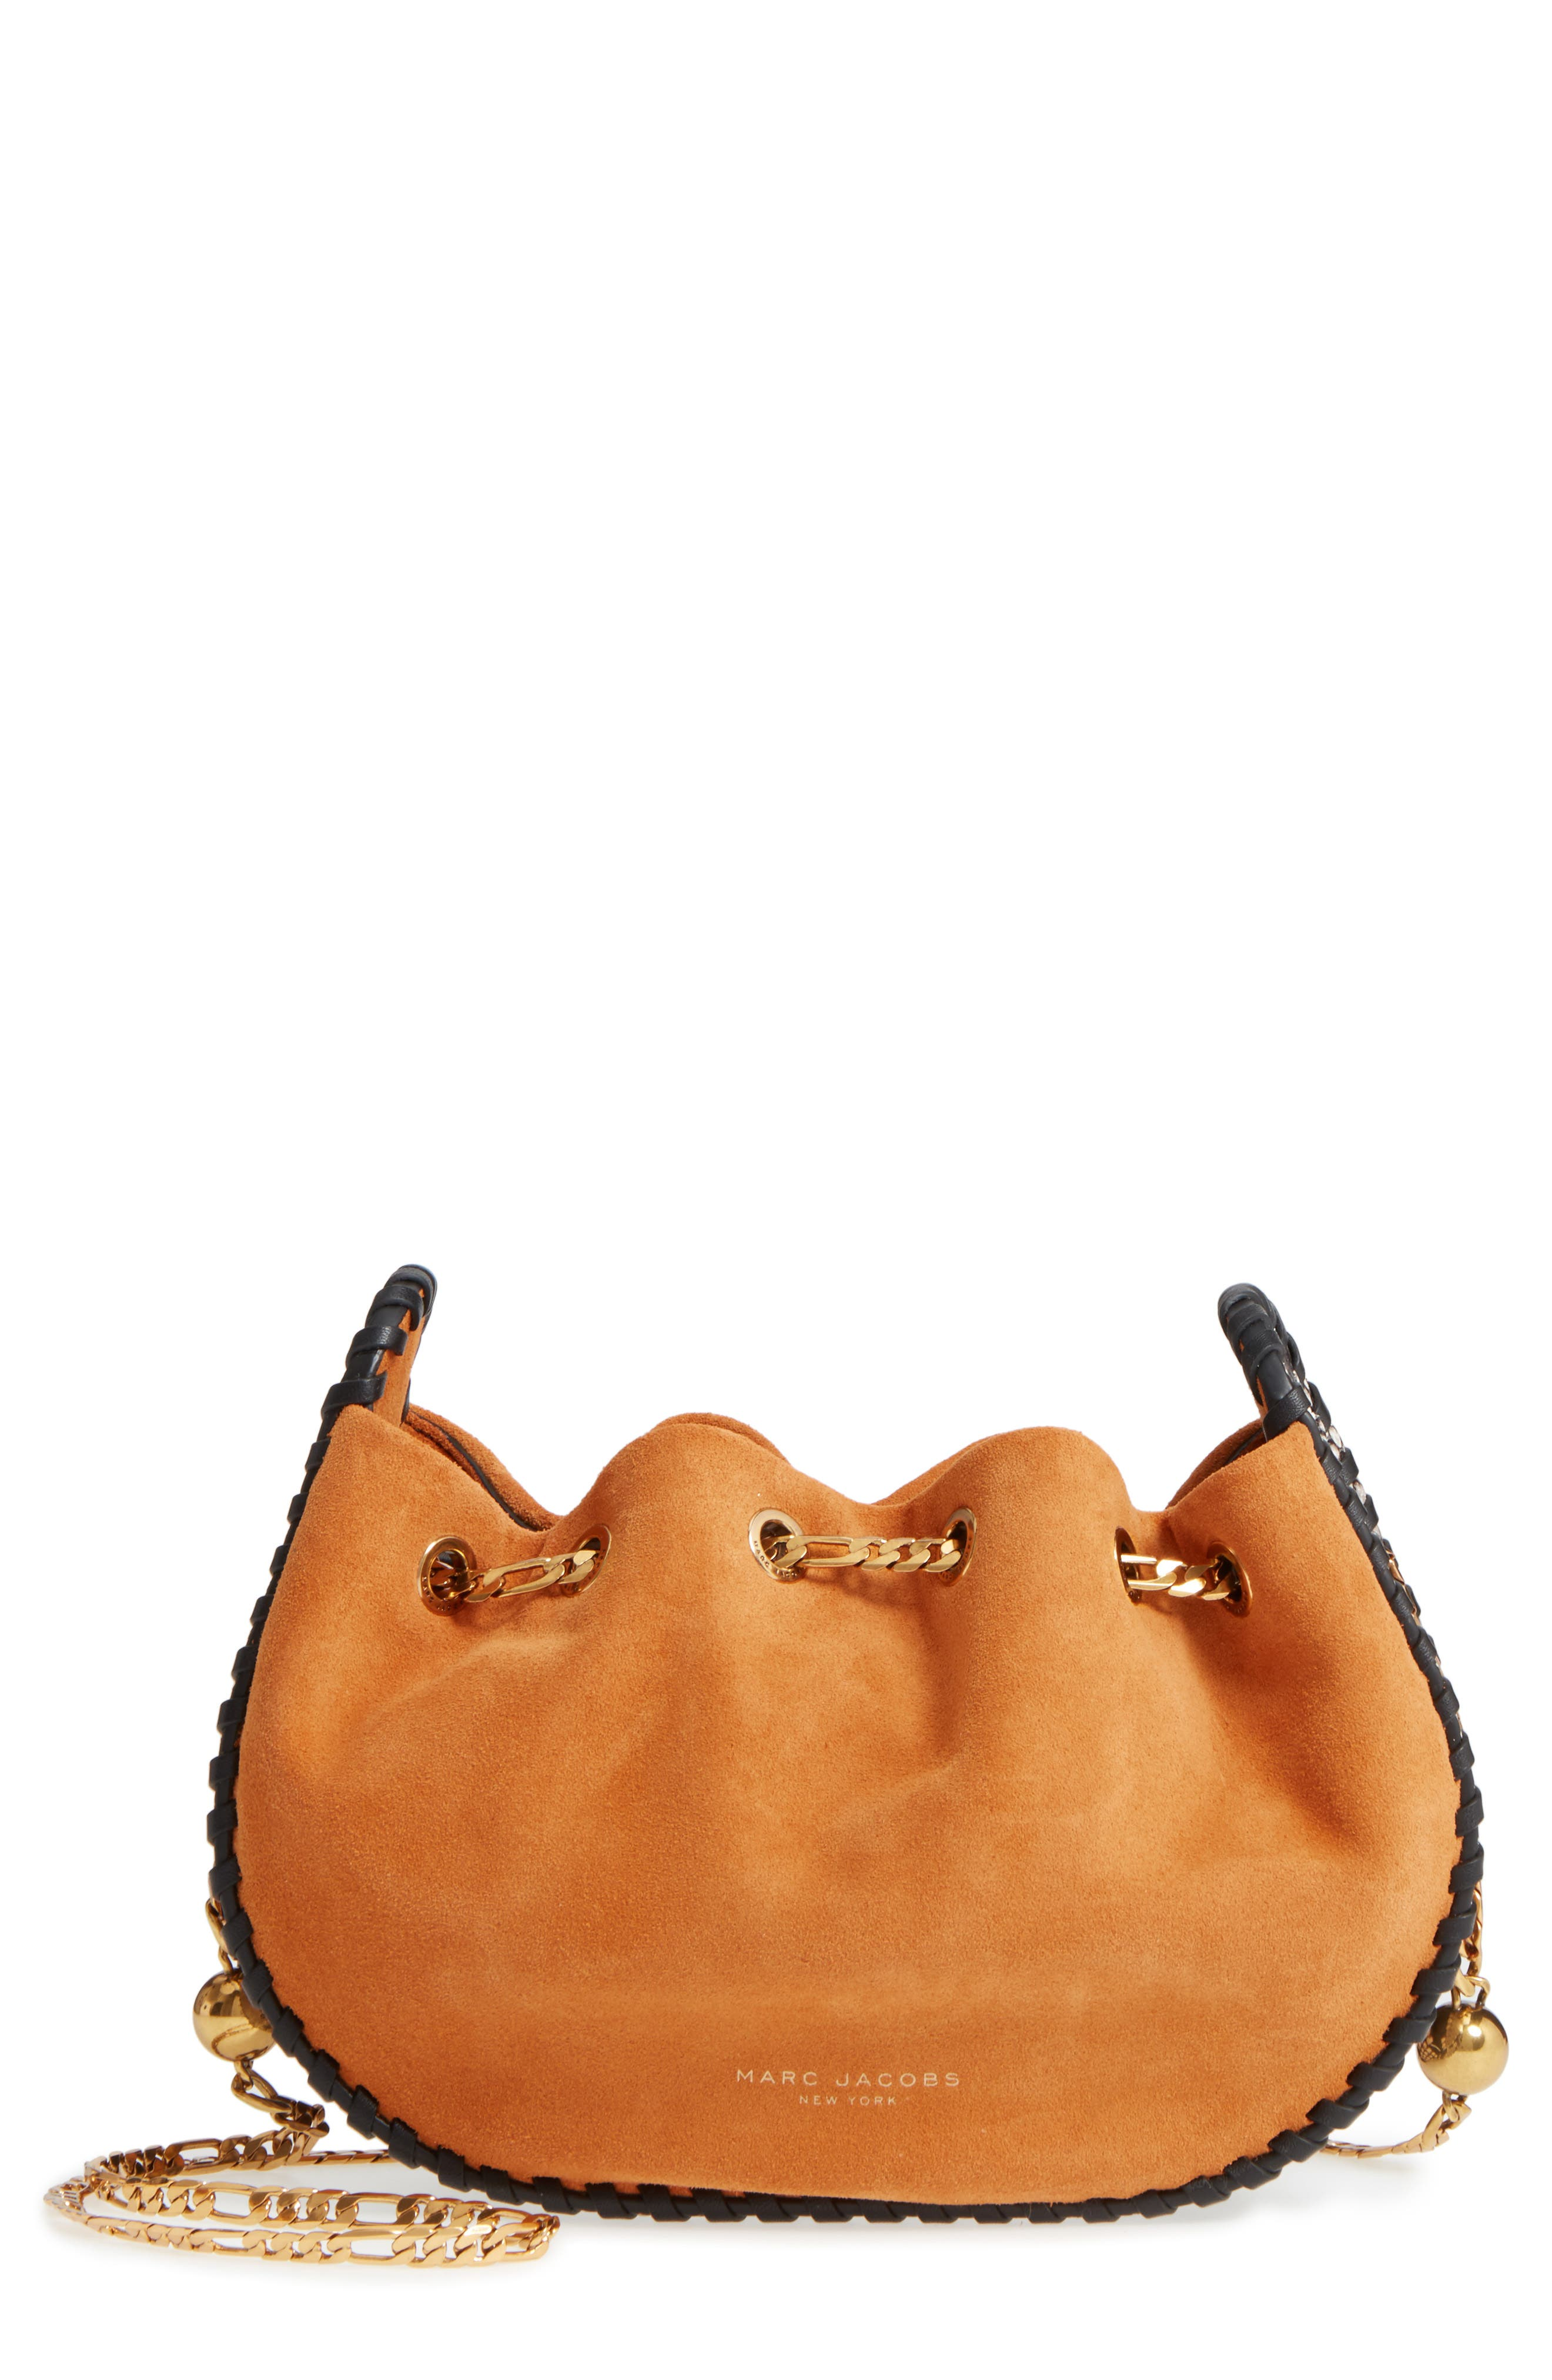 Sway Party Suede Crossbody Bag,                             Main thumbnail 1, color,                             276